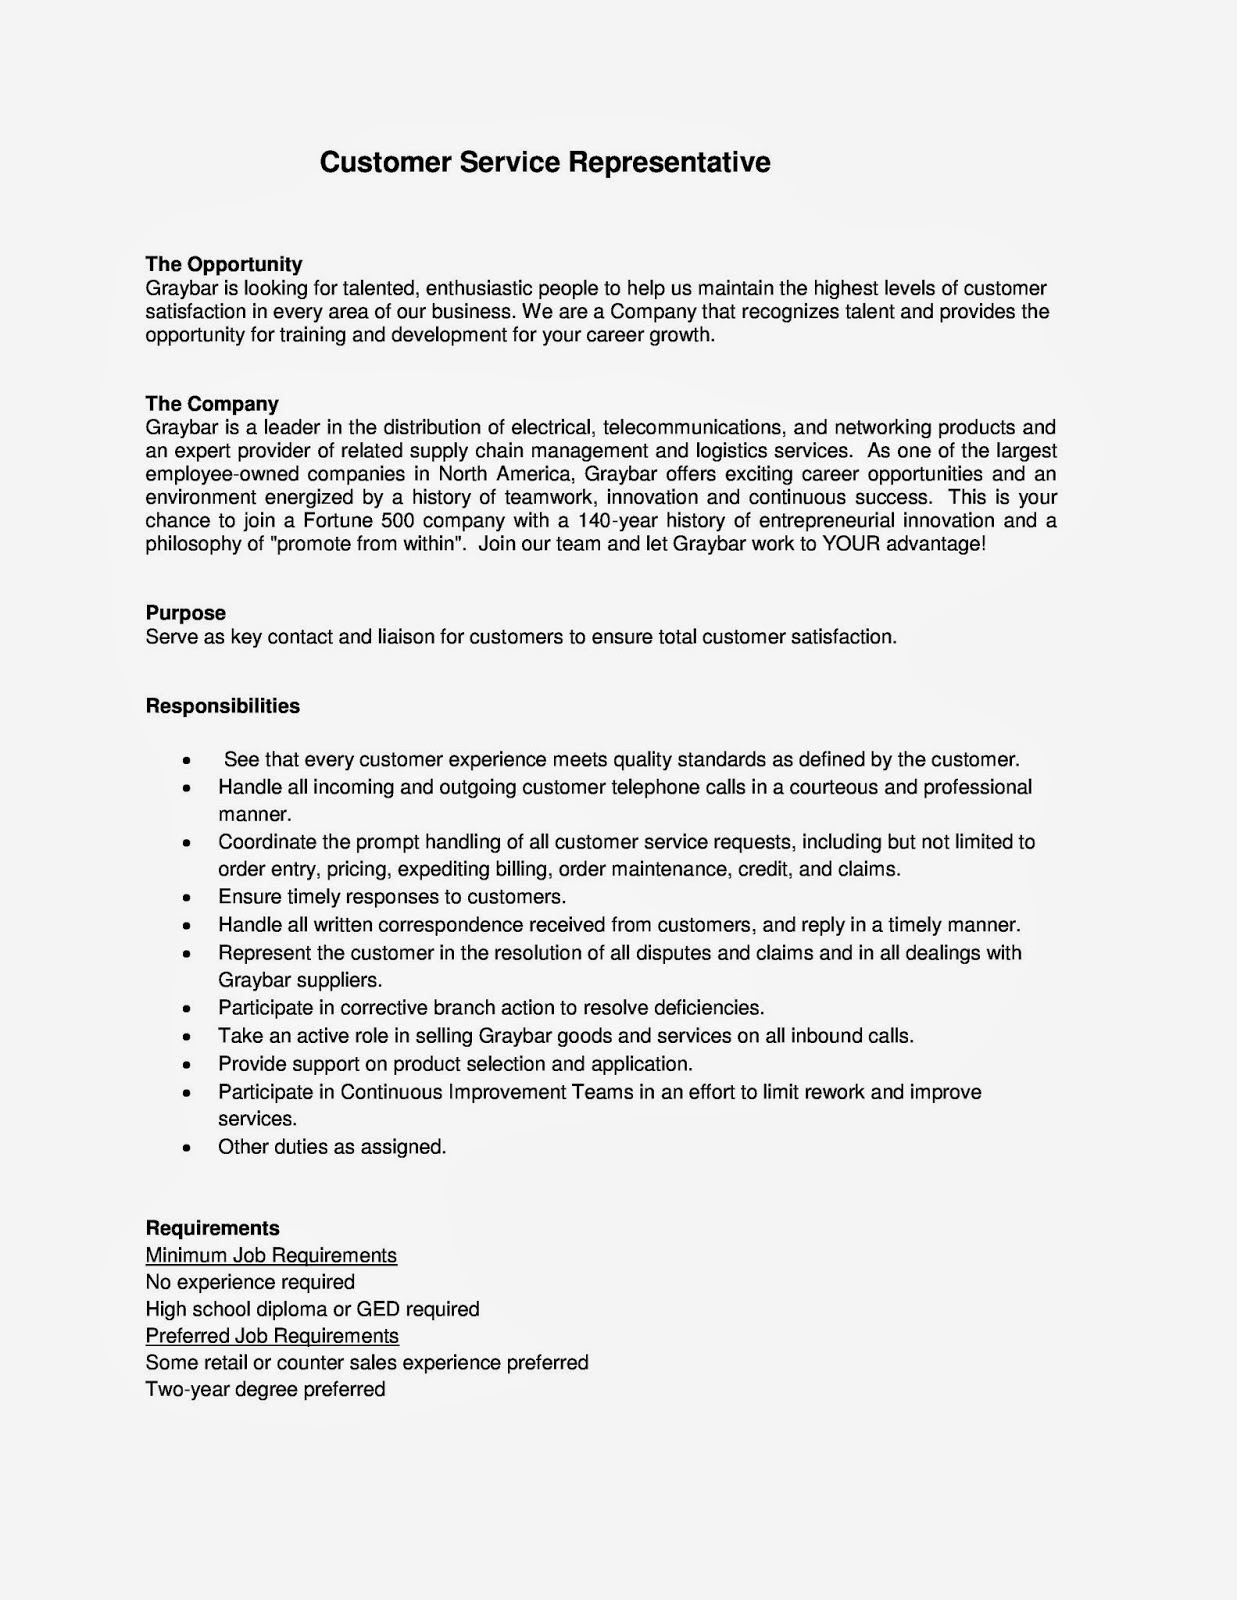 Financial Services Sales Representative Cover Letter